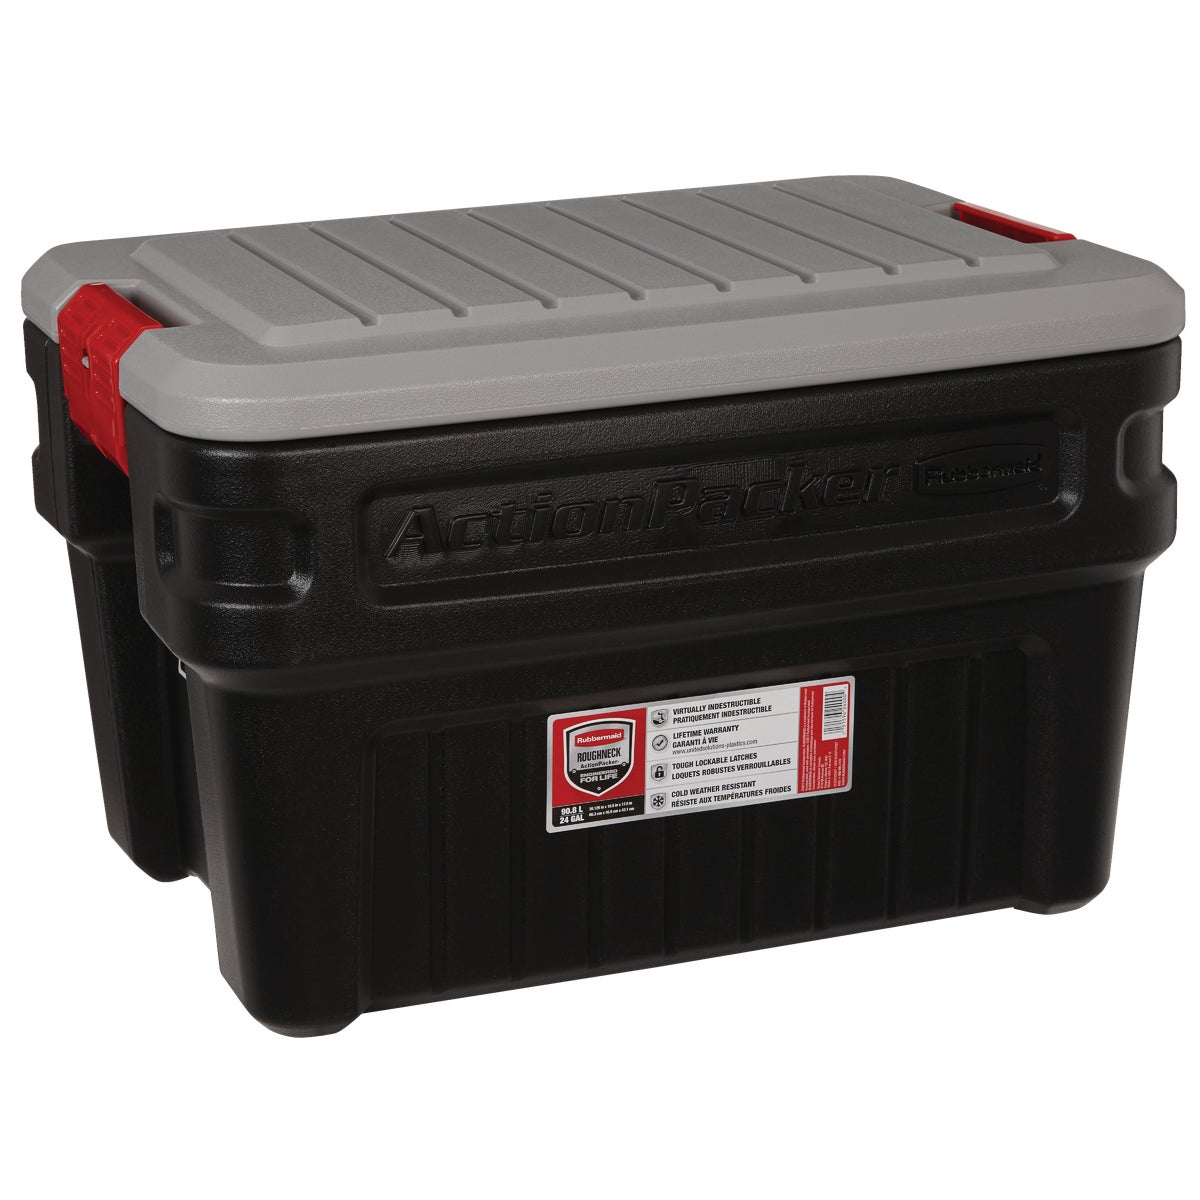 24GAL BLK ACTIONPACKER - 117204 by Rubbermaid